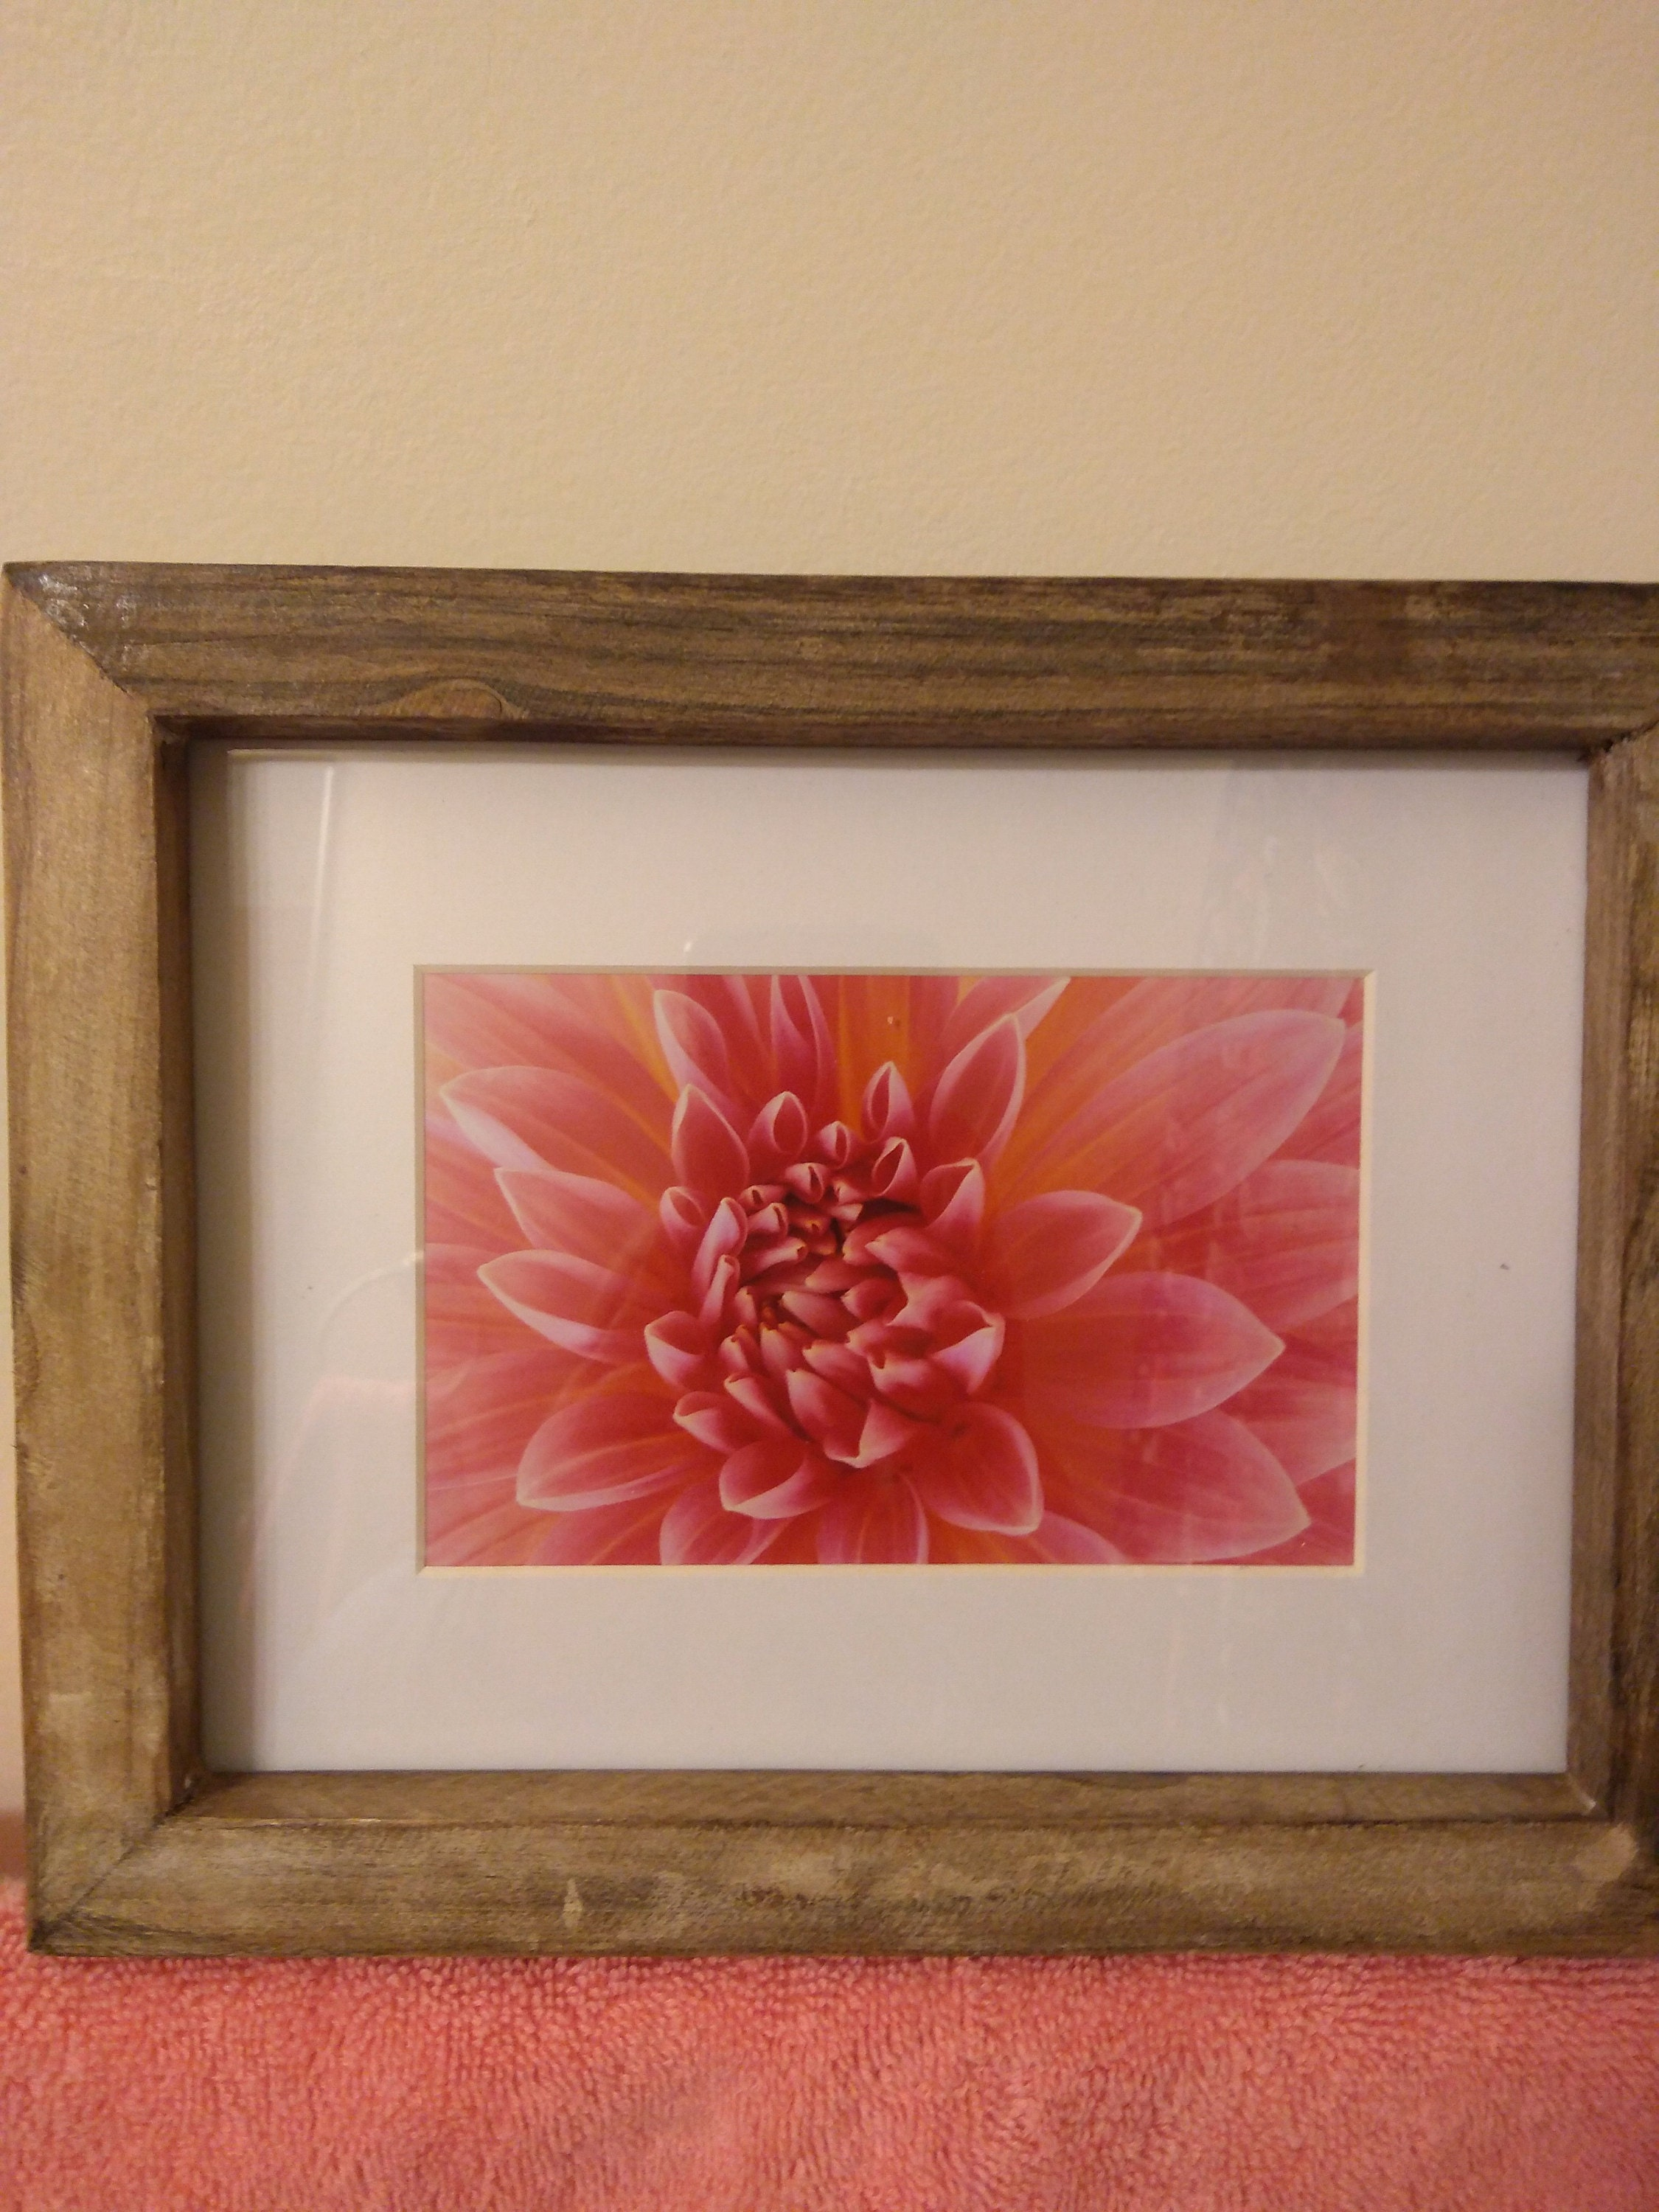 Richelle Schwaller added a photo of their purchase